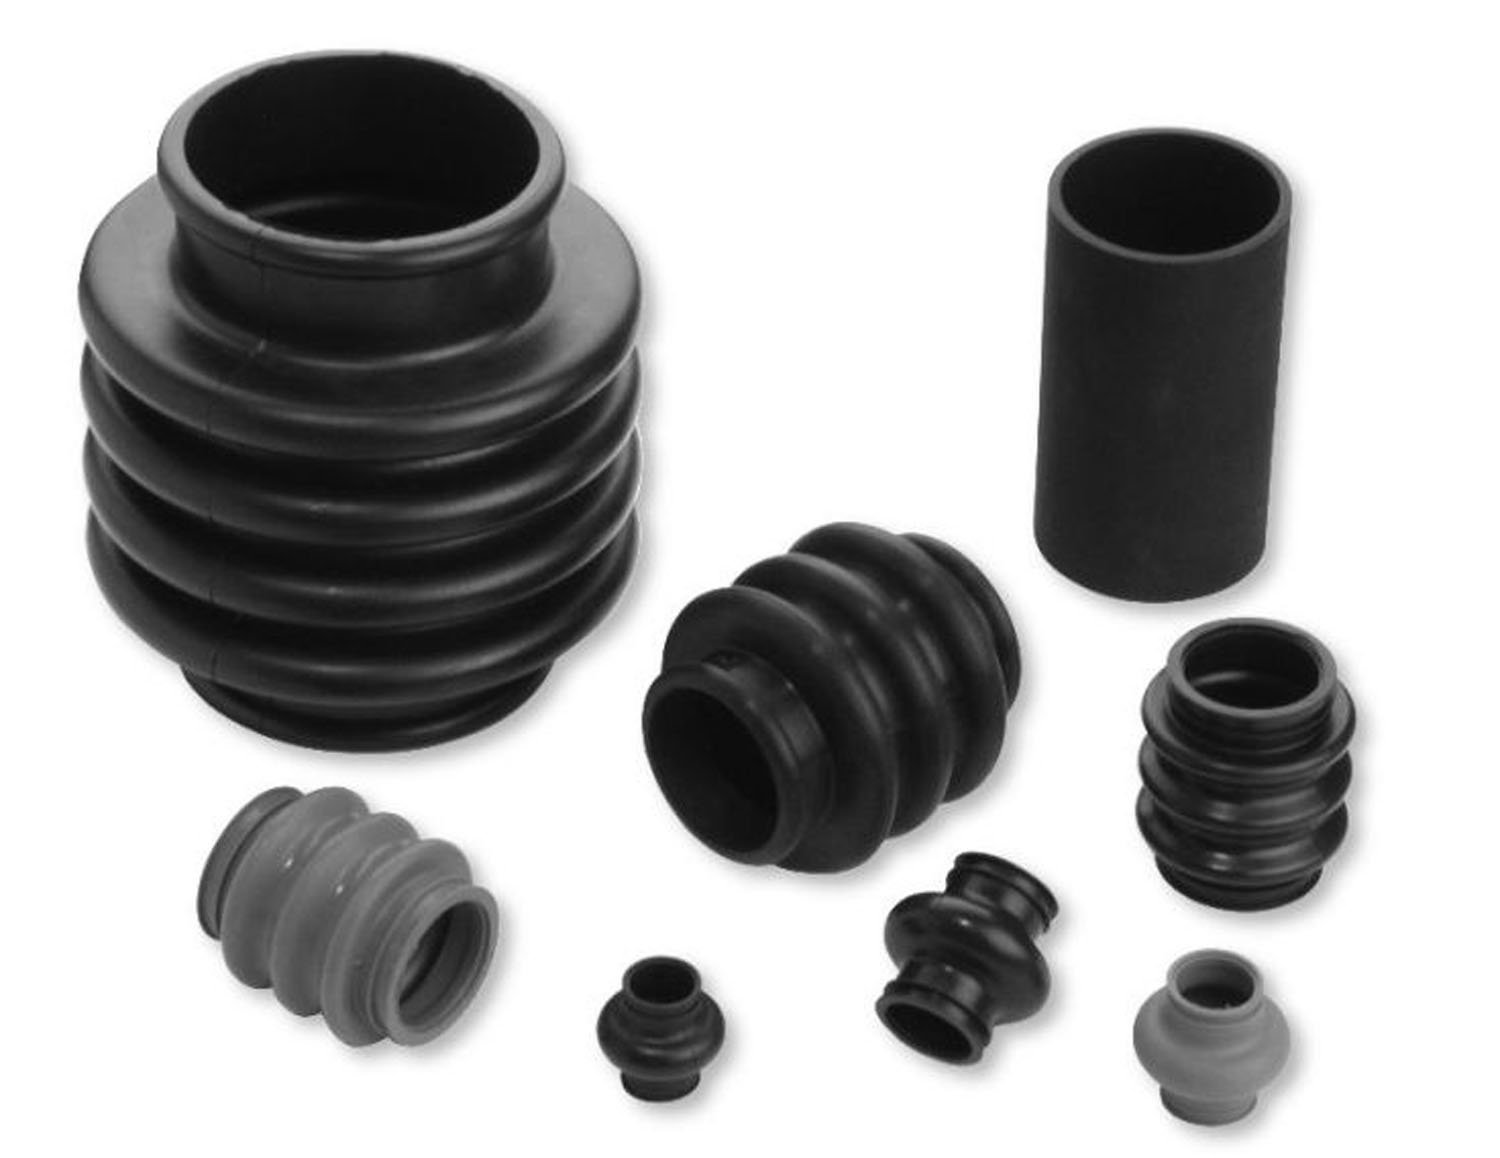 "New Belden UJ-1000 Boot Universal Joint Boot Covers, Nitrile, 1"" Bore, 1-1/2"" OD, 1-1/2"" Overall Length for cheap"